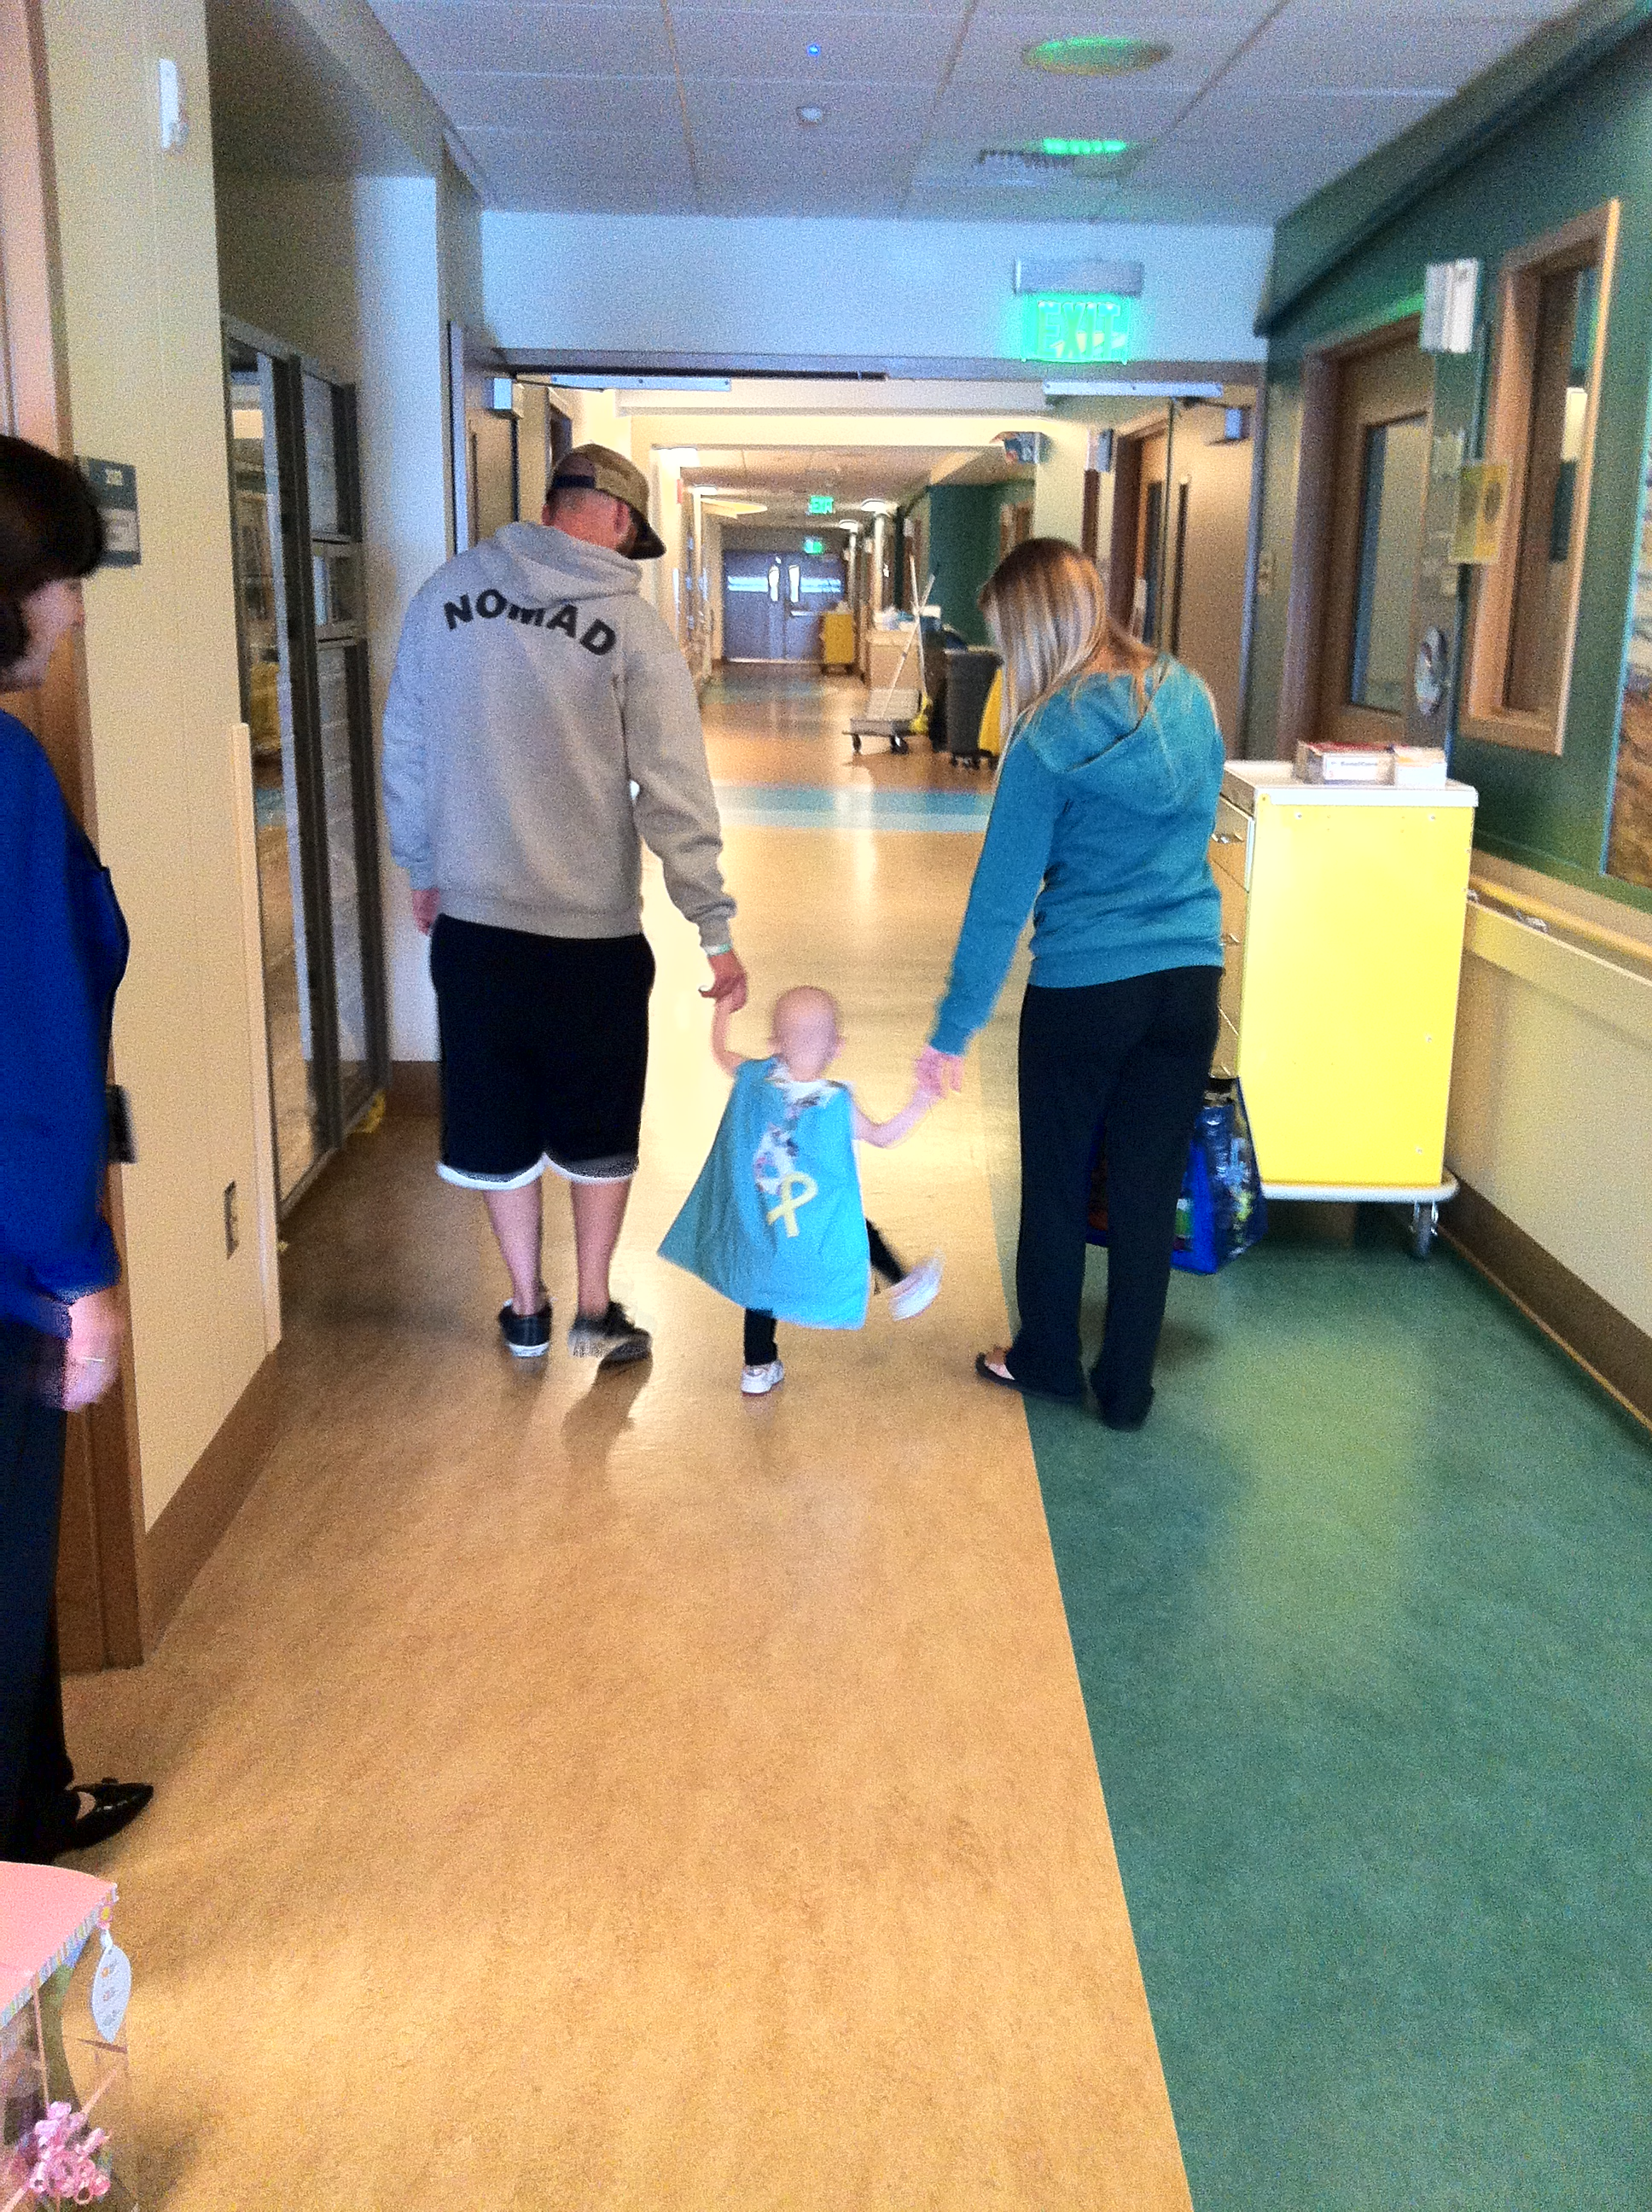 Brixton, happily walking the hospital halls with dad and mom in hand